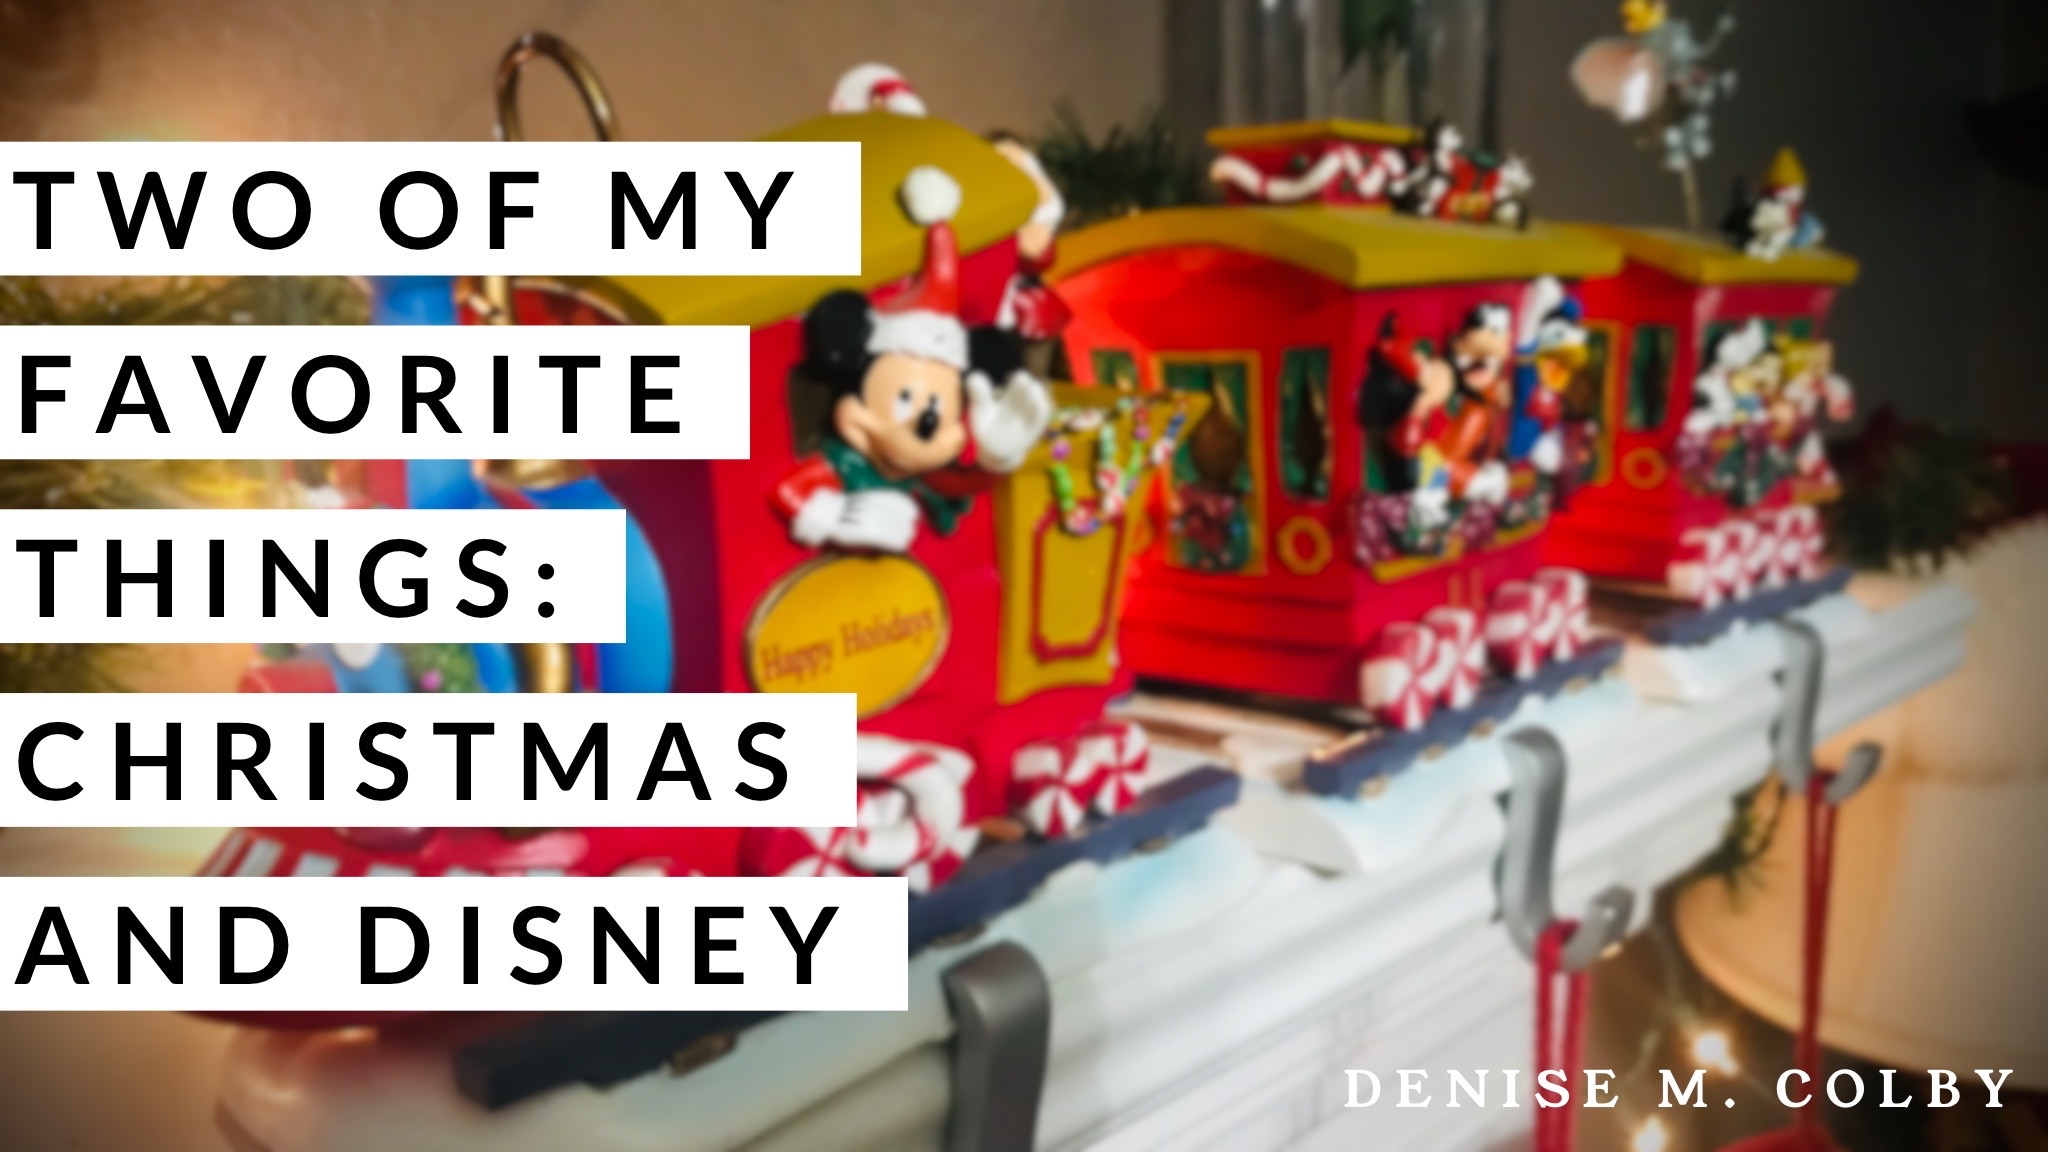 Title Graphic for Denise M. Colby Blog Post Titled Two of My Favorite Things: Christmas and Disney with background pic of Disney Christmas Train Stocking Holders